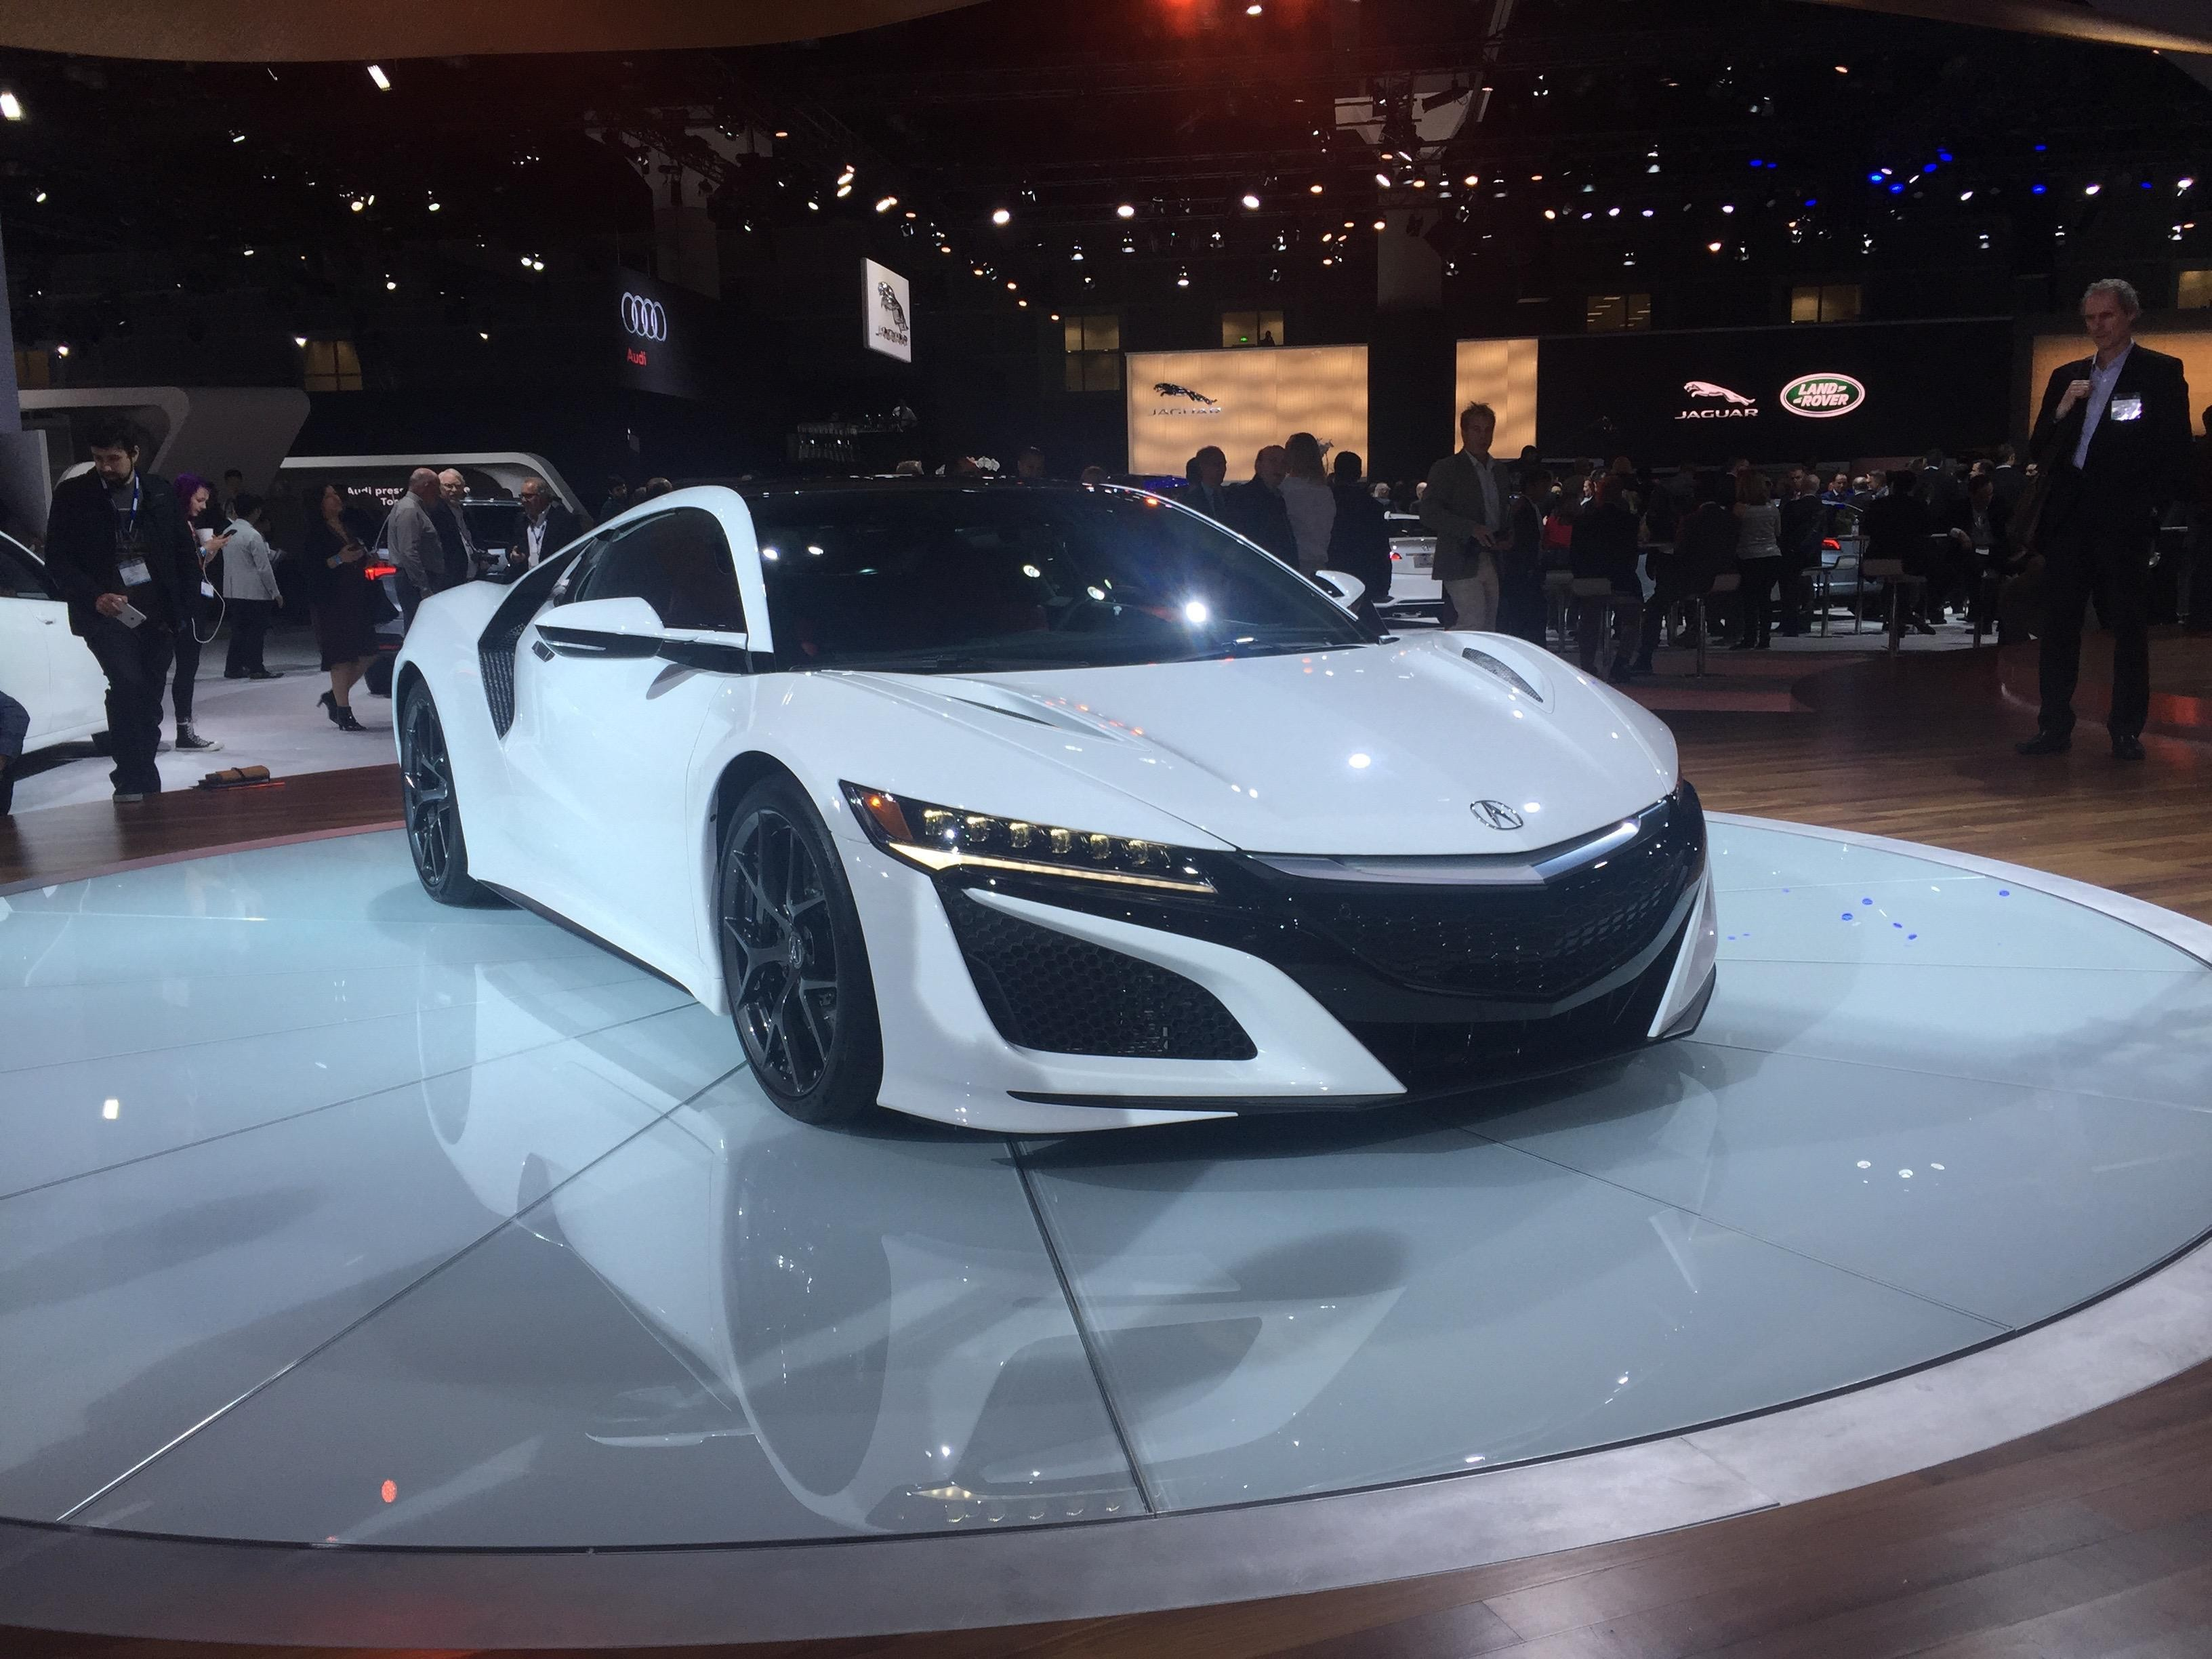 2017 acura nsx goes on sale soon who gets the first one wjar